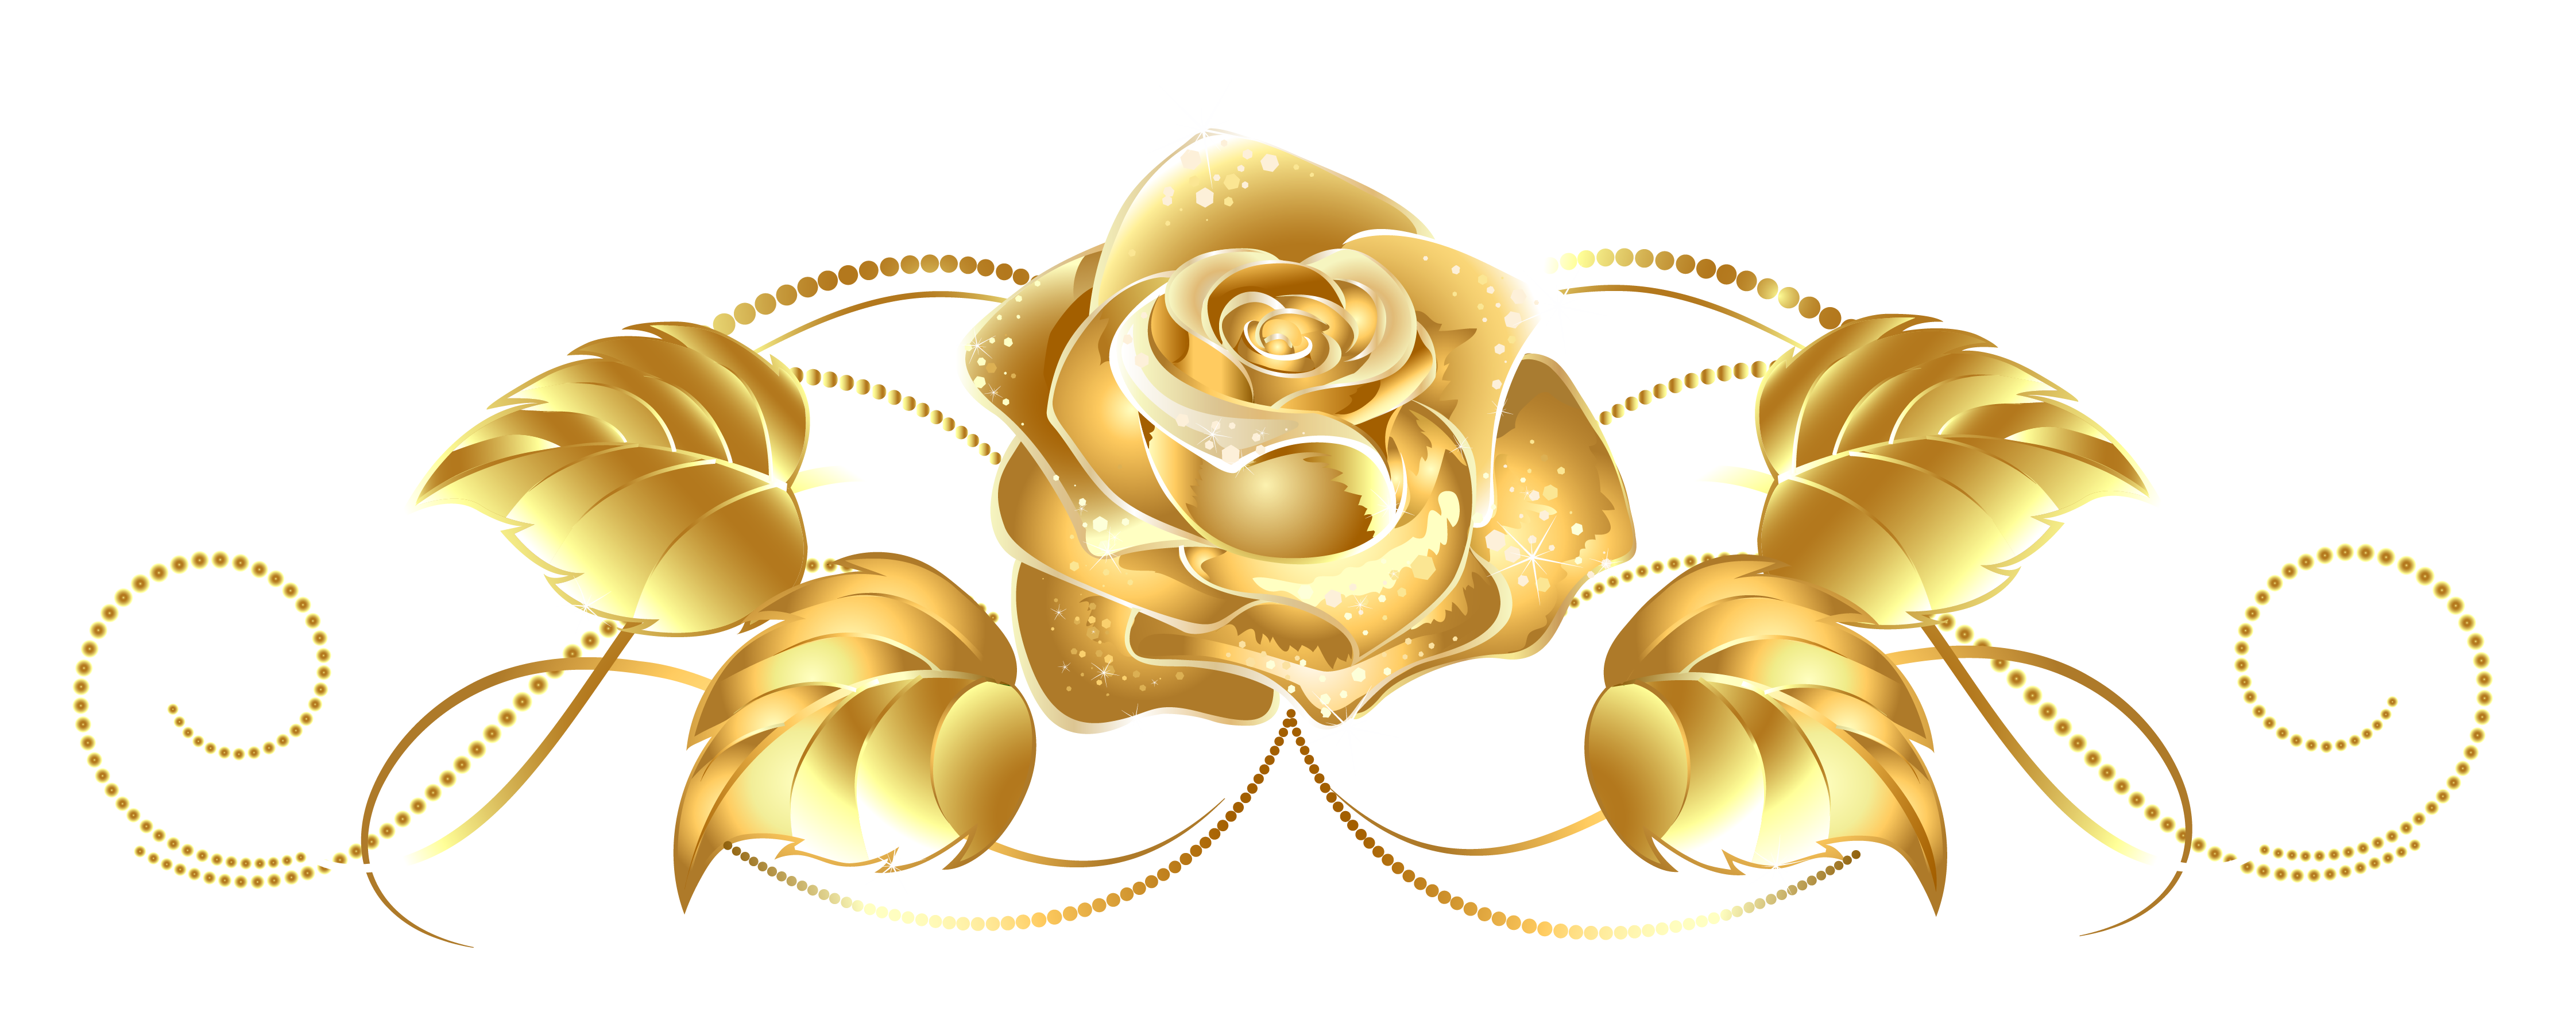 Free Rose Gold Png, Download Free Clip Art, Free Clip Art on.